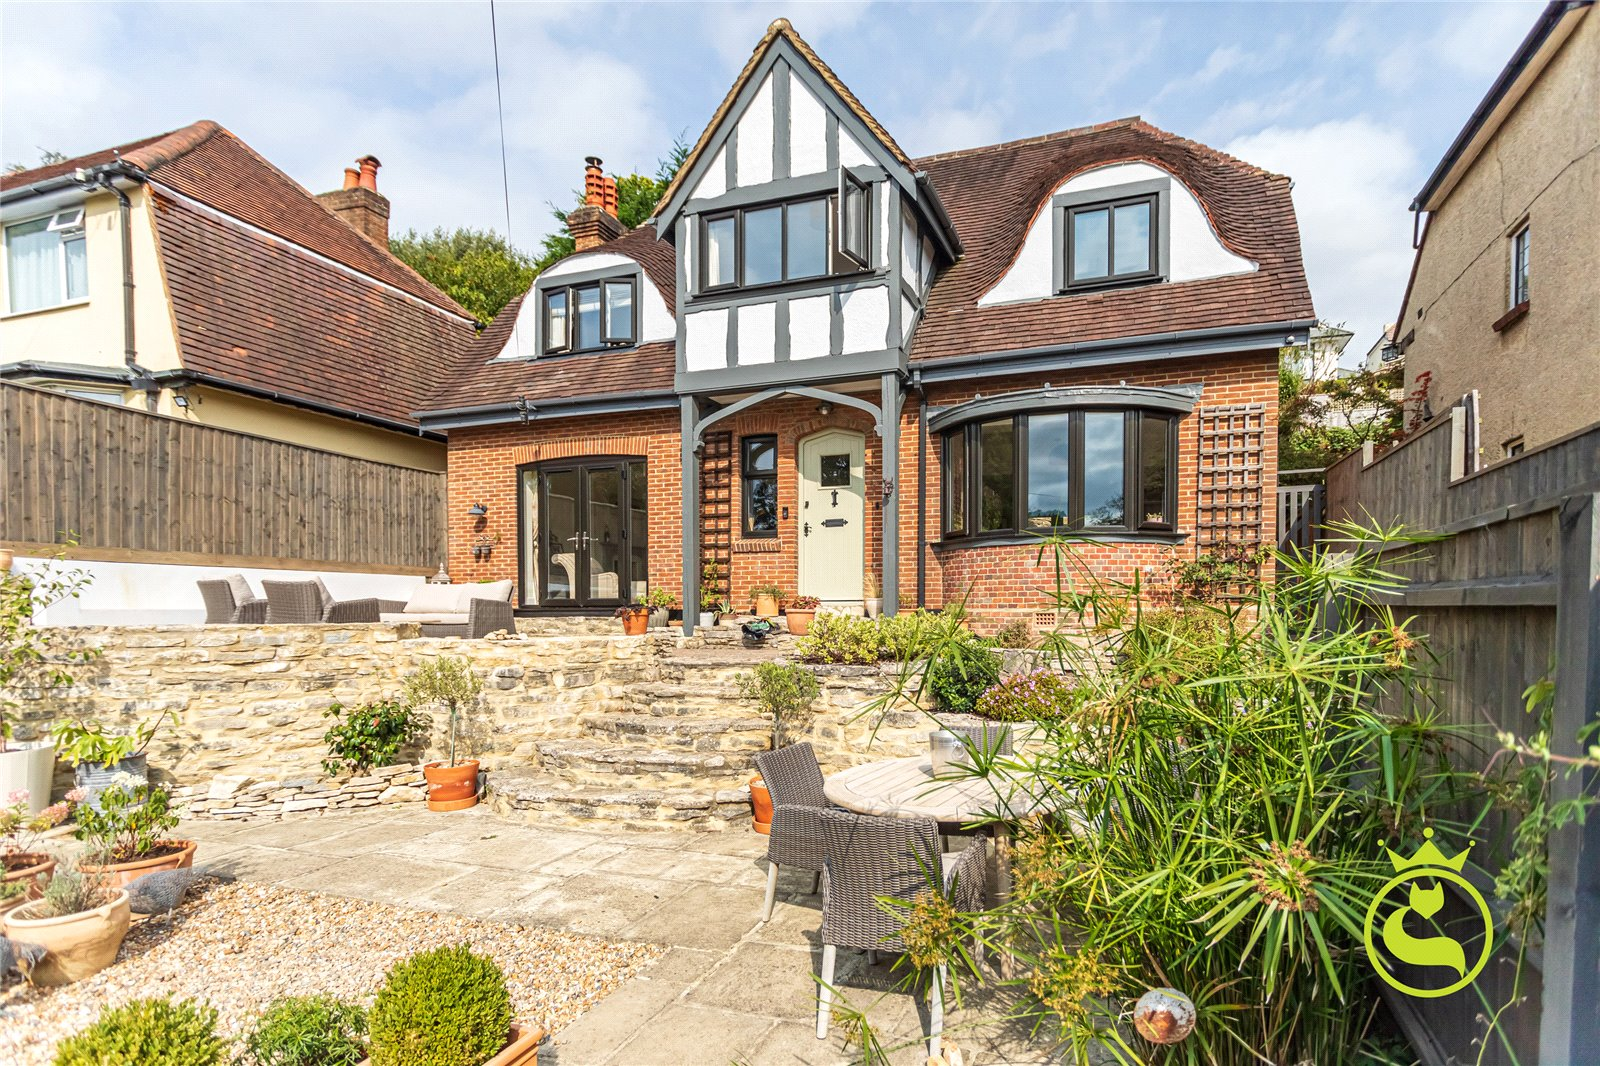 3 bed house for sale in Glen Road, Lower Parkstone, BH14